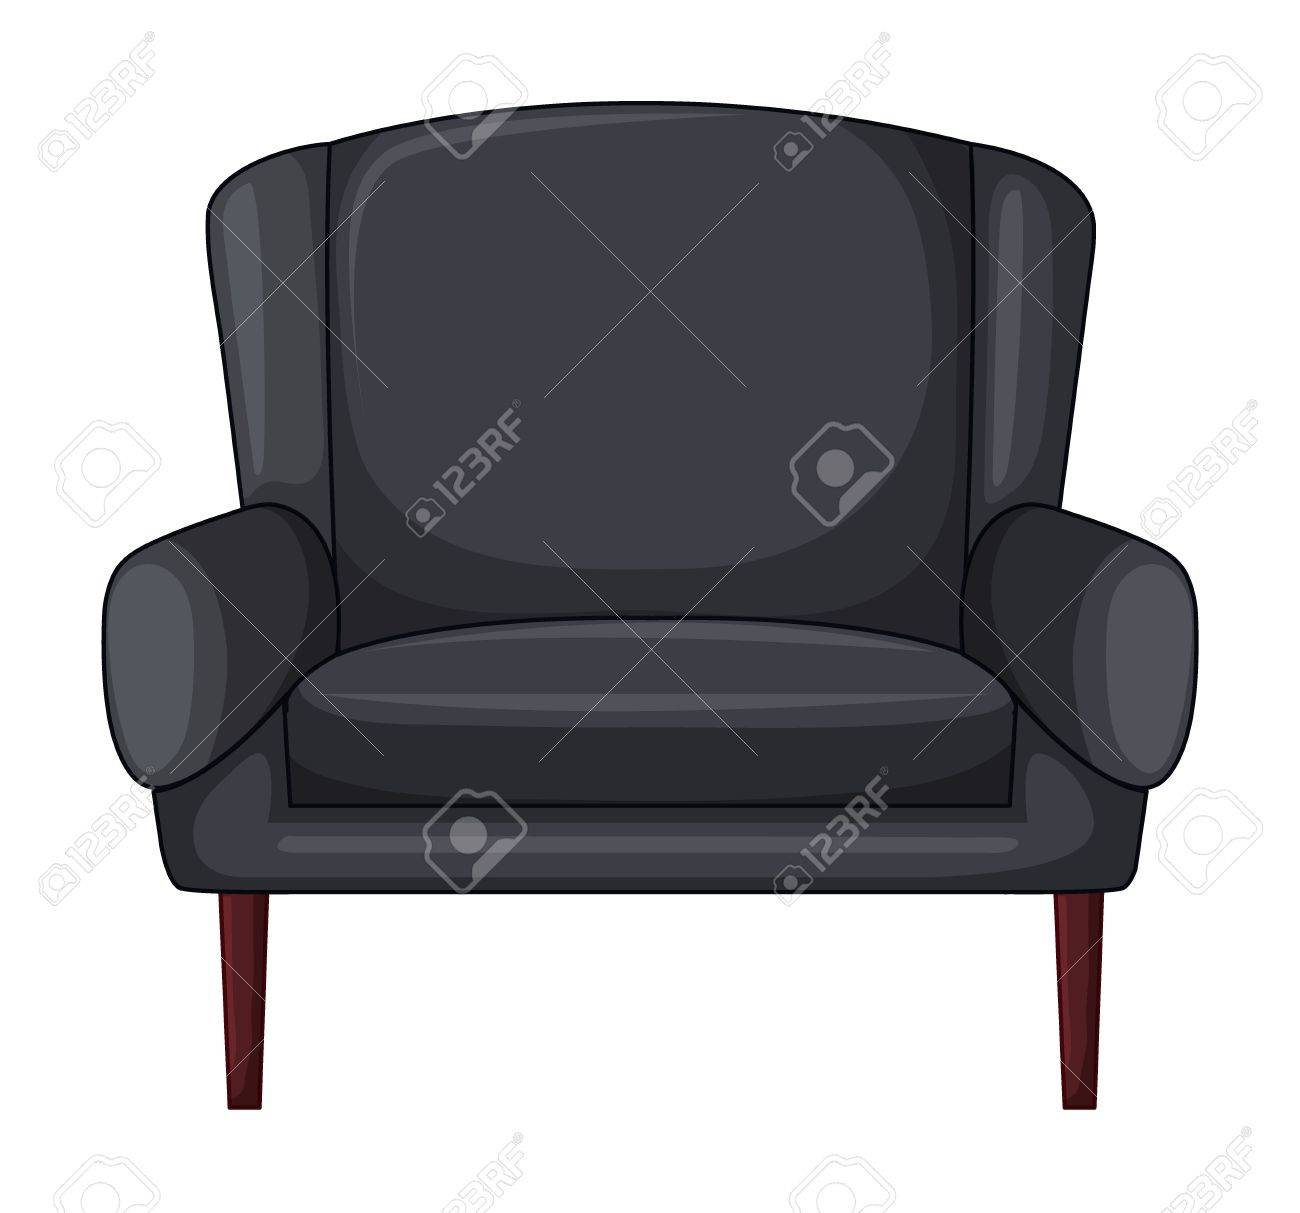 Illustration of an armchair on a white background Stock Vector - 17031026